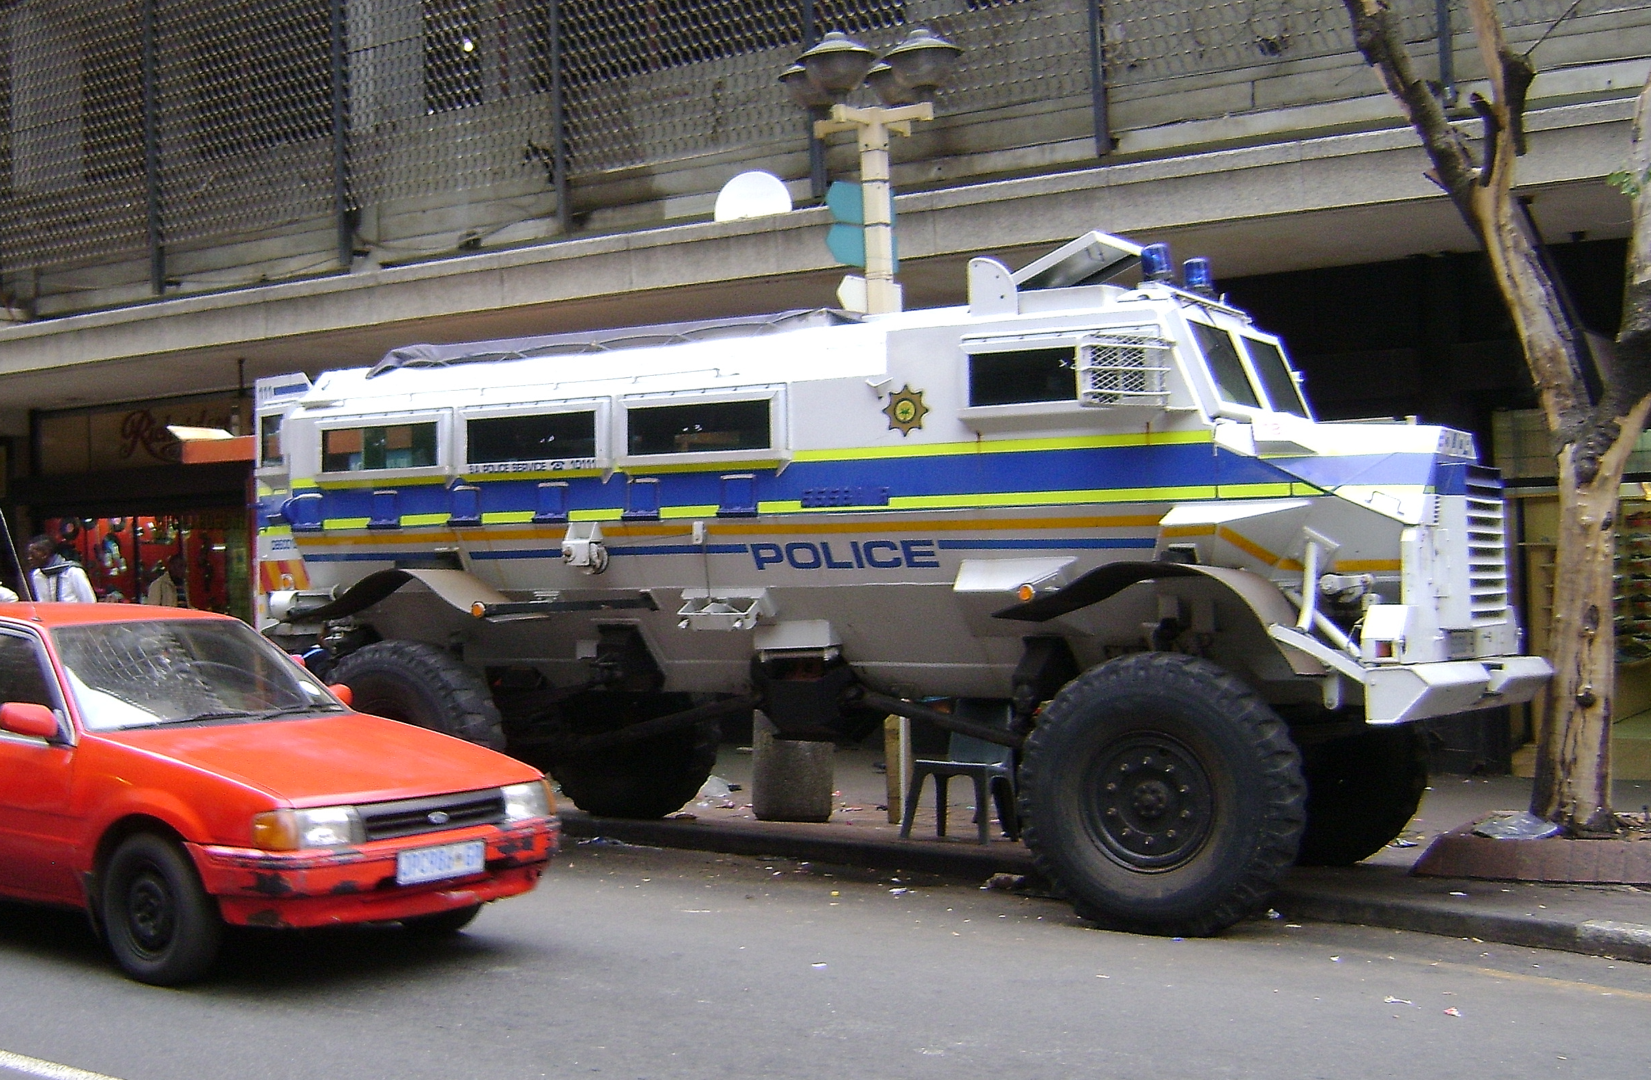 Thanks to left-over equipment from the oppressive Apartheid regime in South Africa, Johannesburg was able to go the 'buy local' route when it came to acquiring police vehicles suitable for the city's abhorrent crime problem.